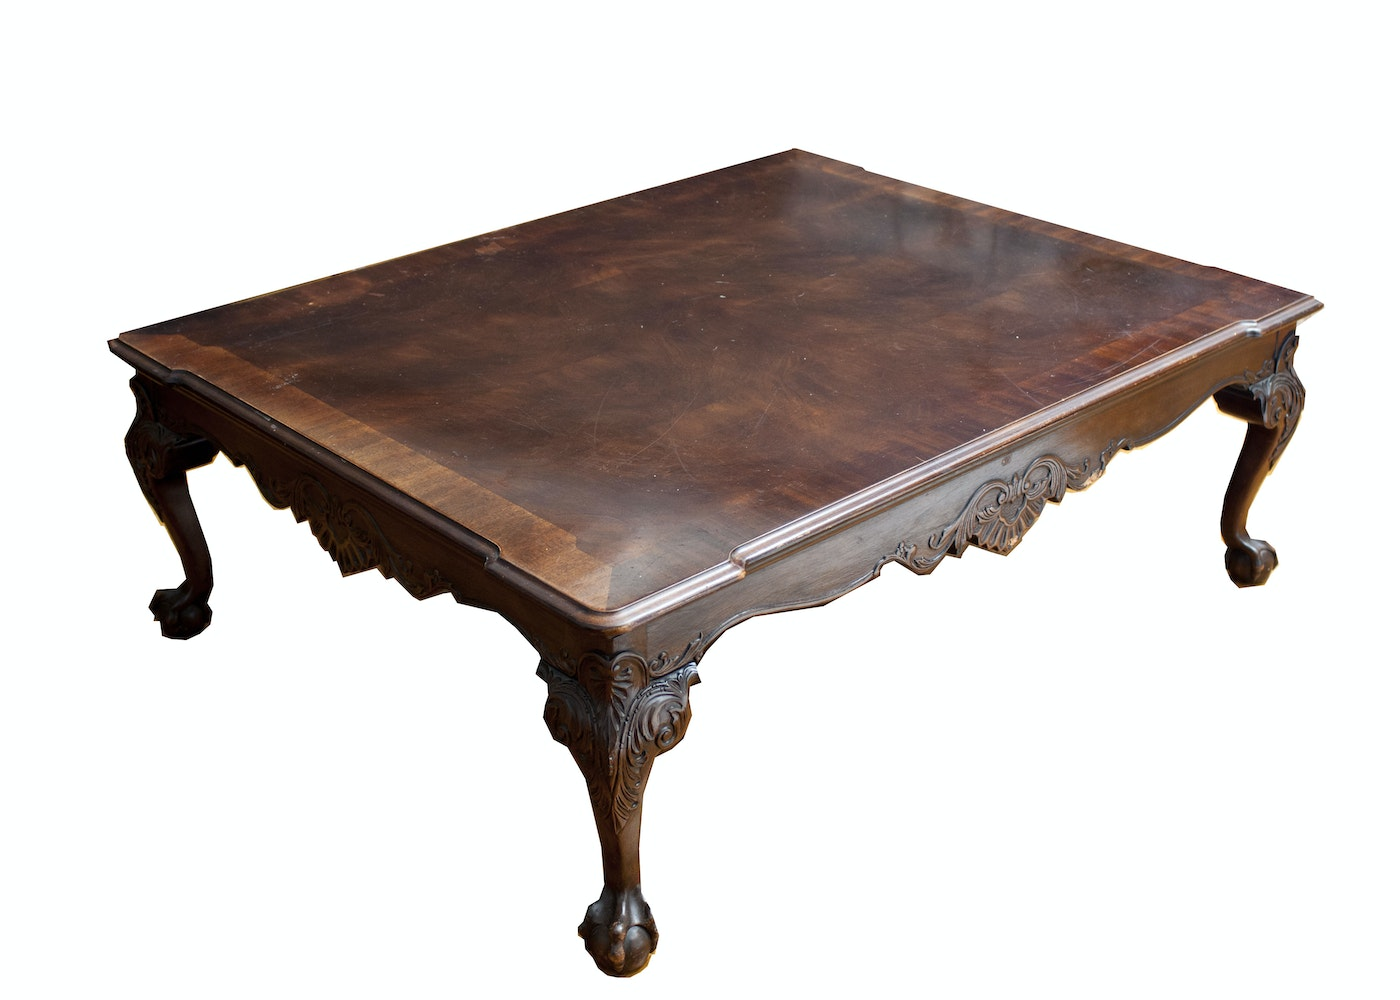 Ornate wooden coffee table ebth for Table 52 2015